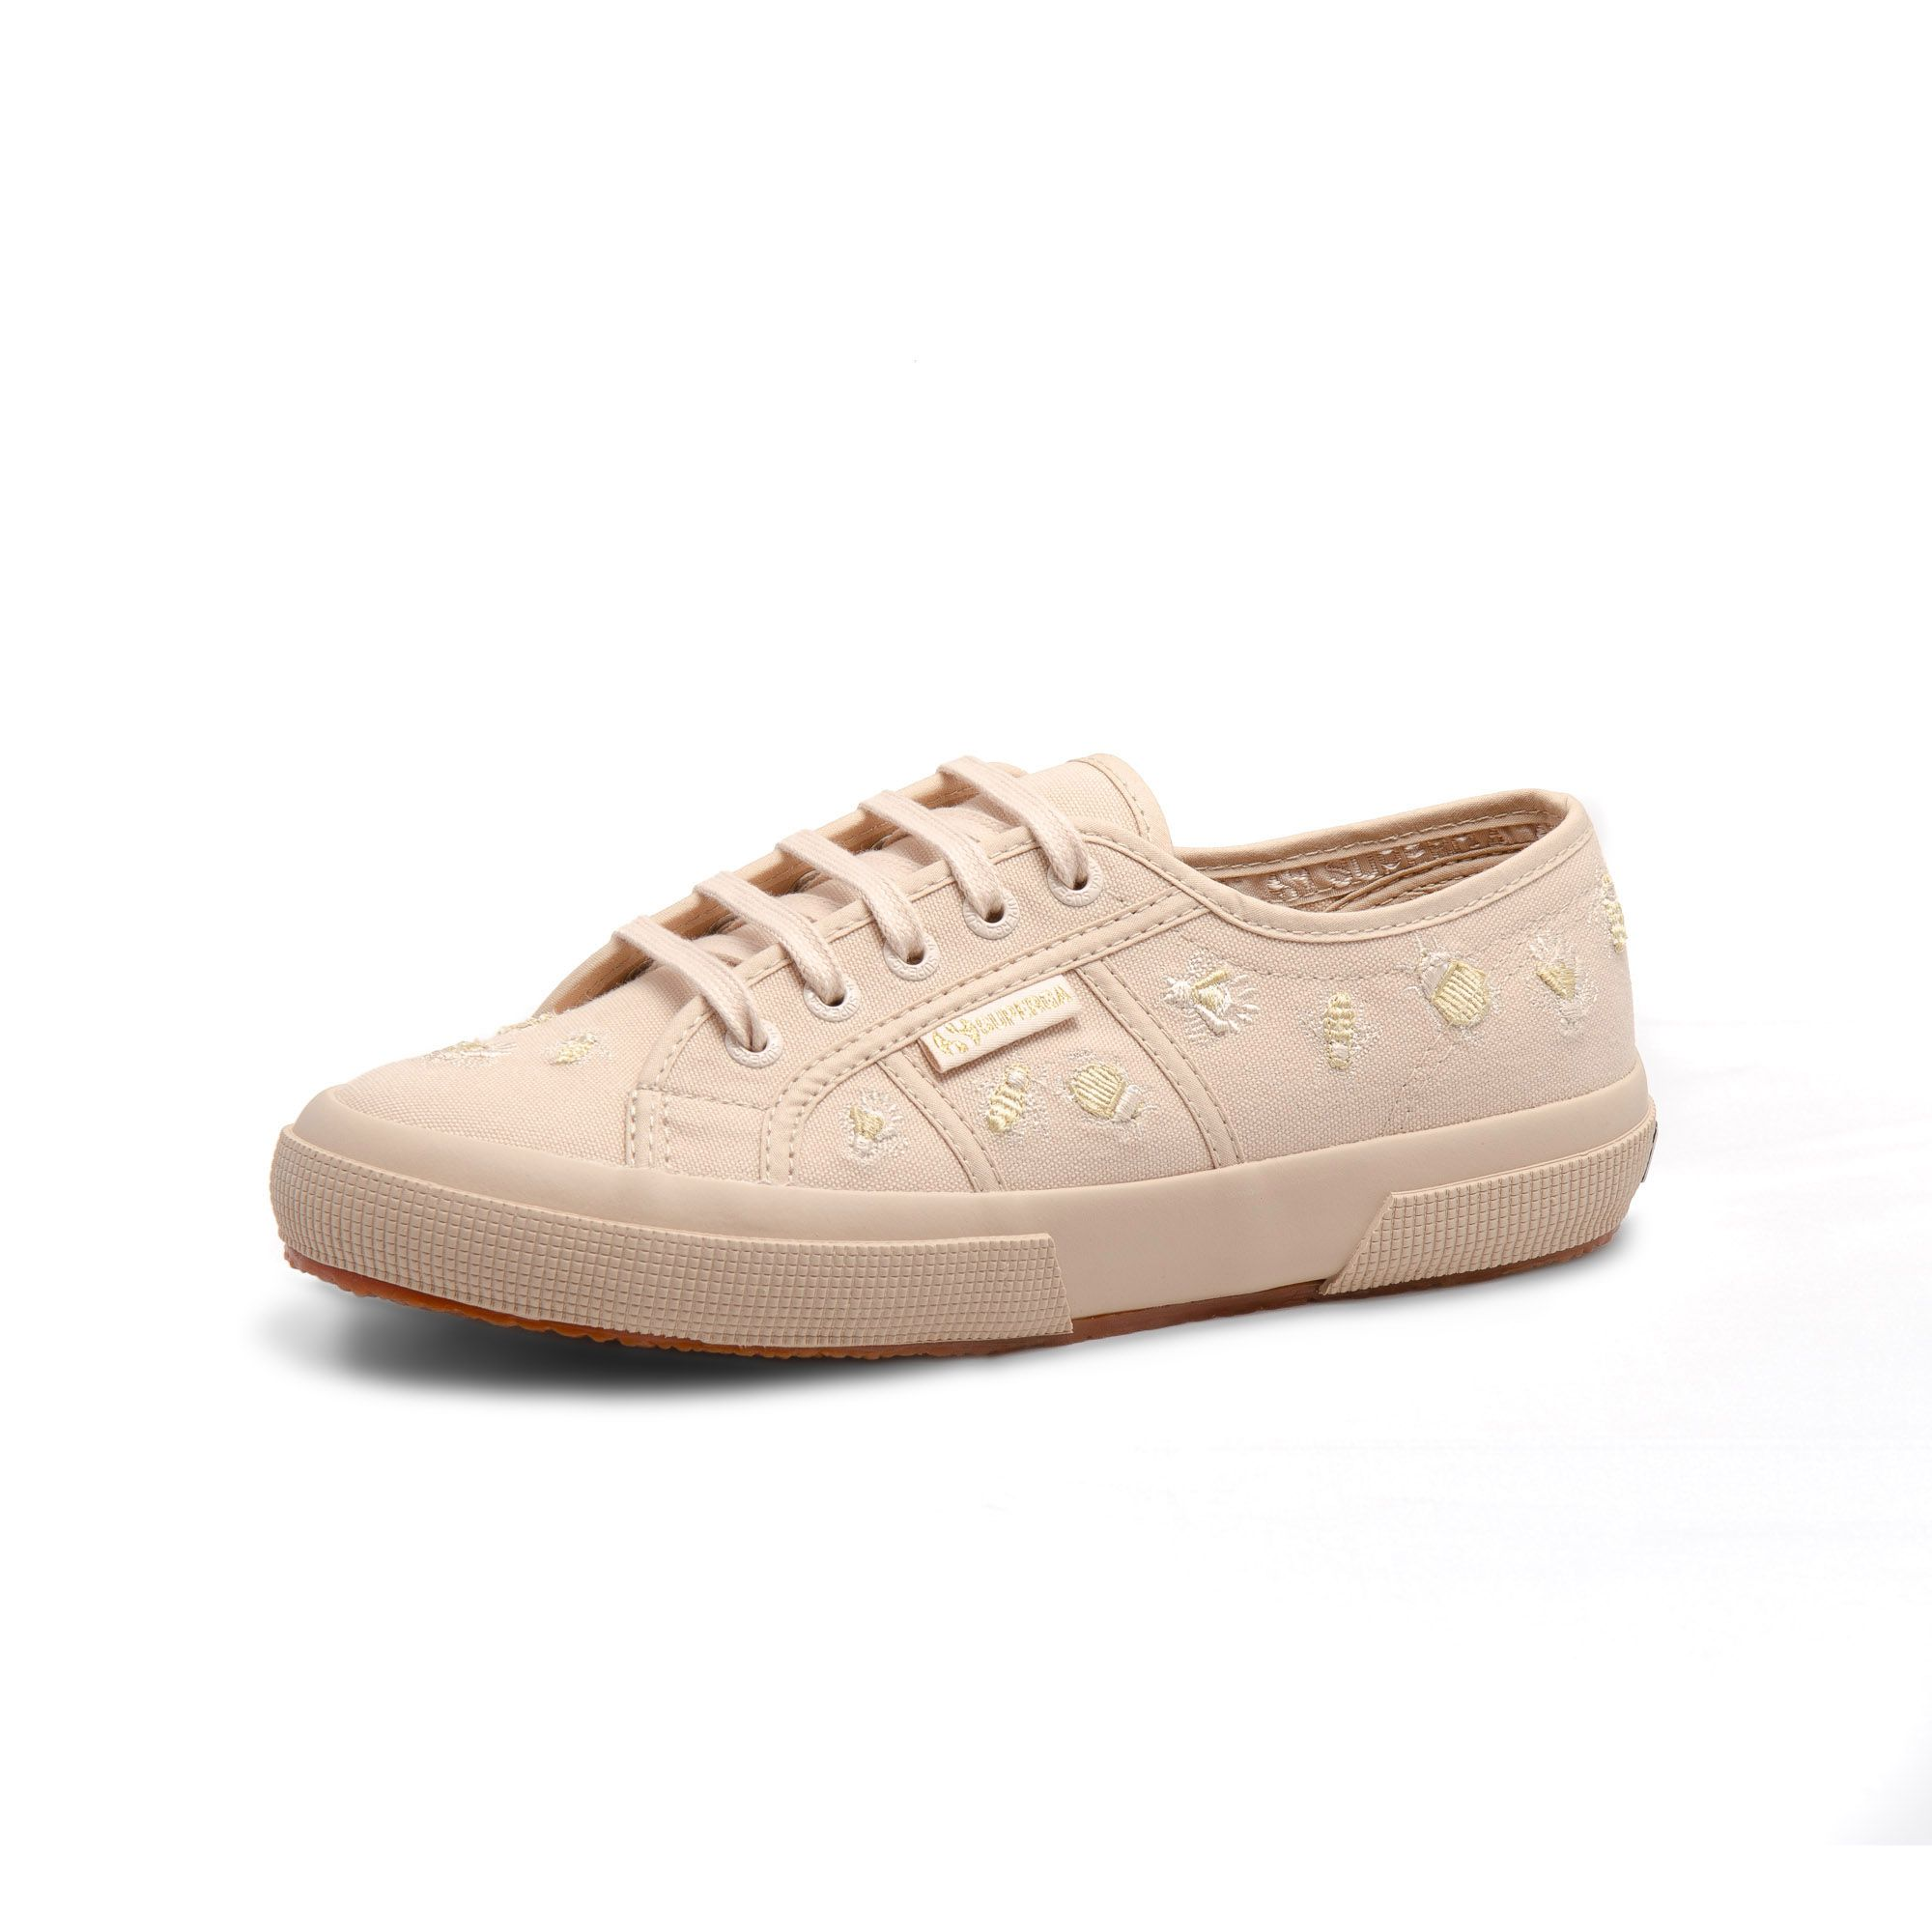 2750 INSECTEMBROIDER FULL BEIGE - GOLD